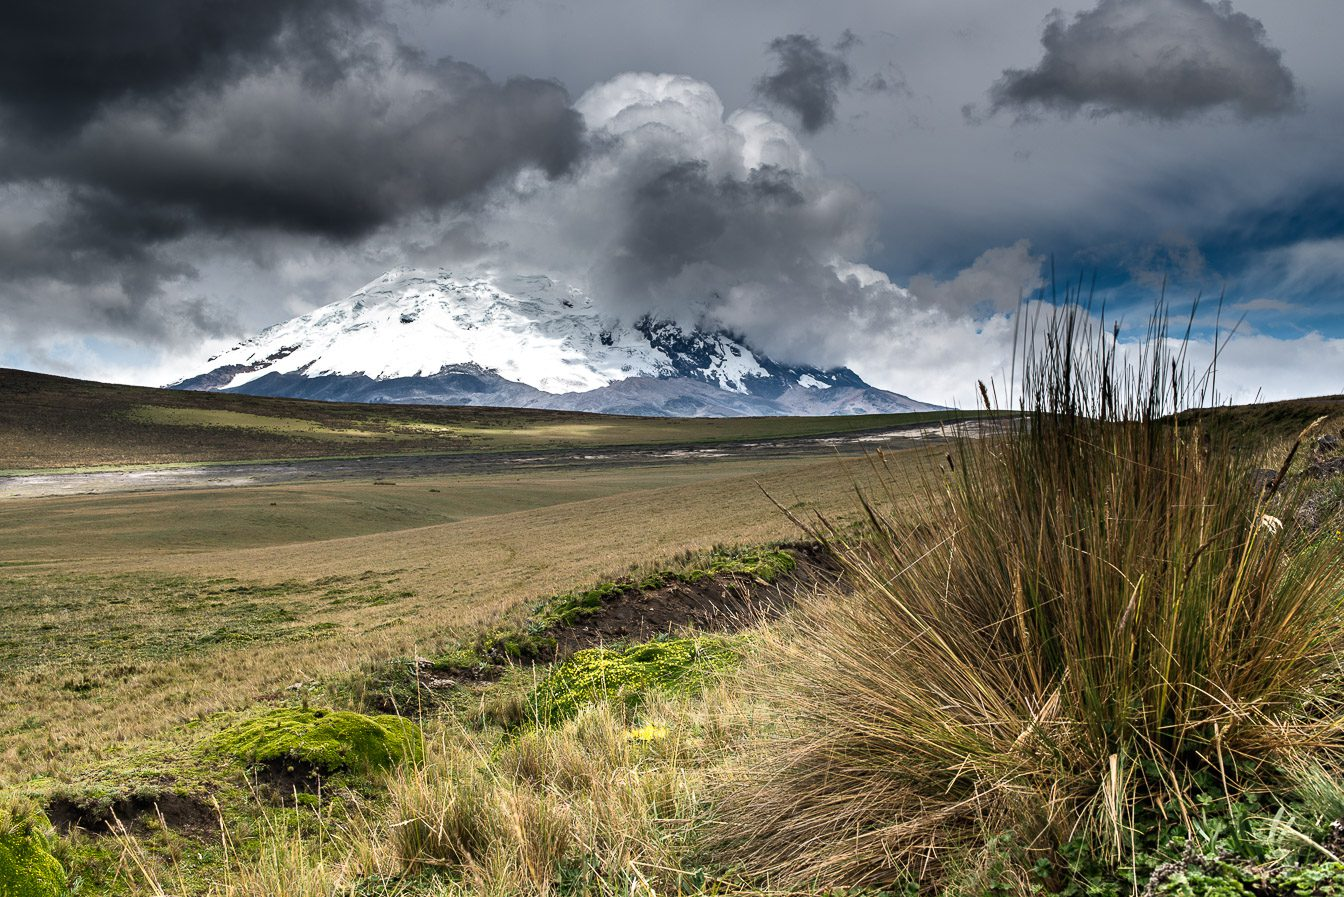 Antisana volcano 5758 m and paramo plateau